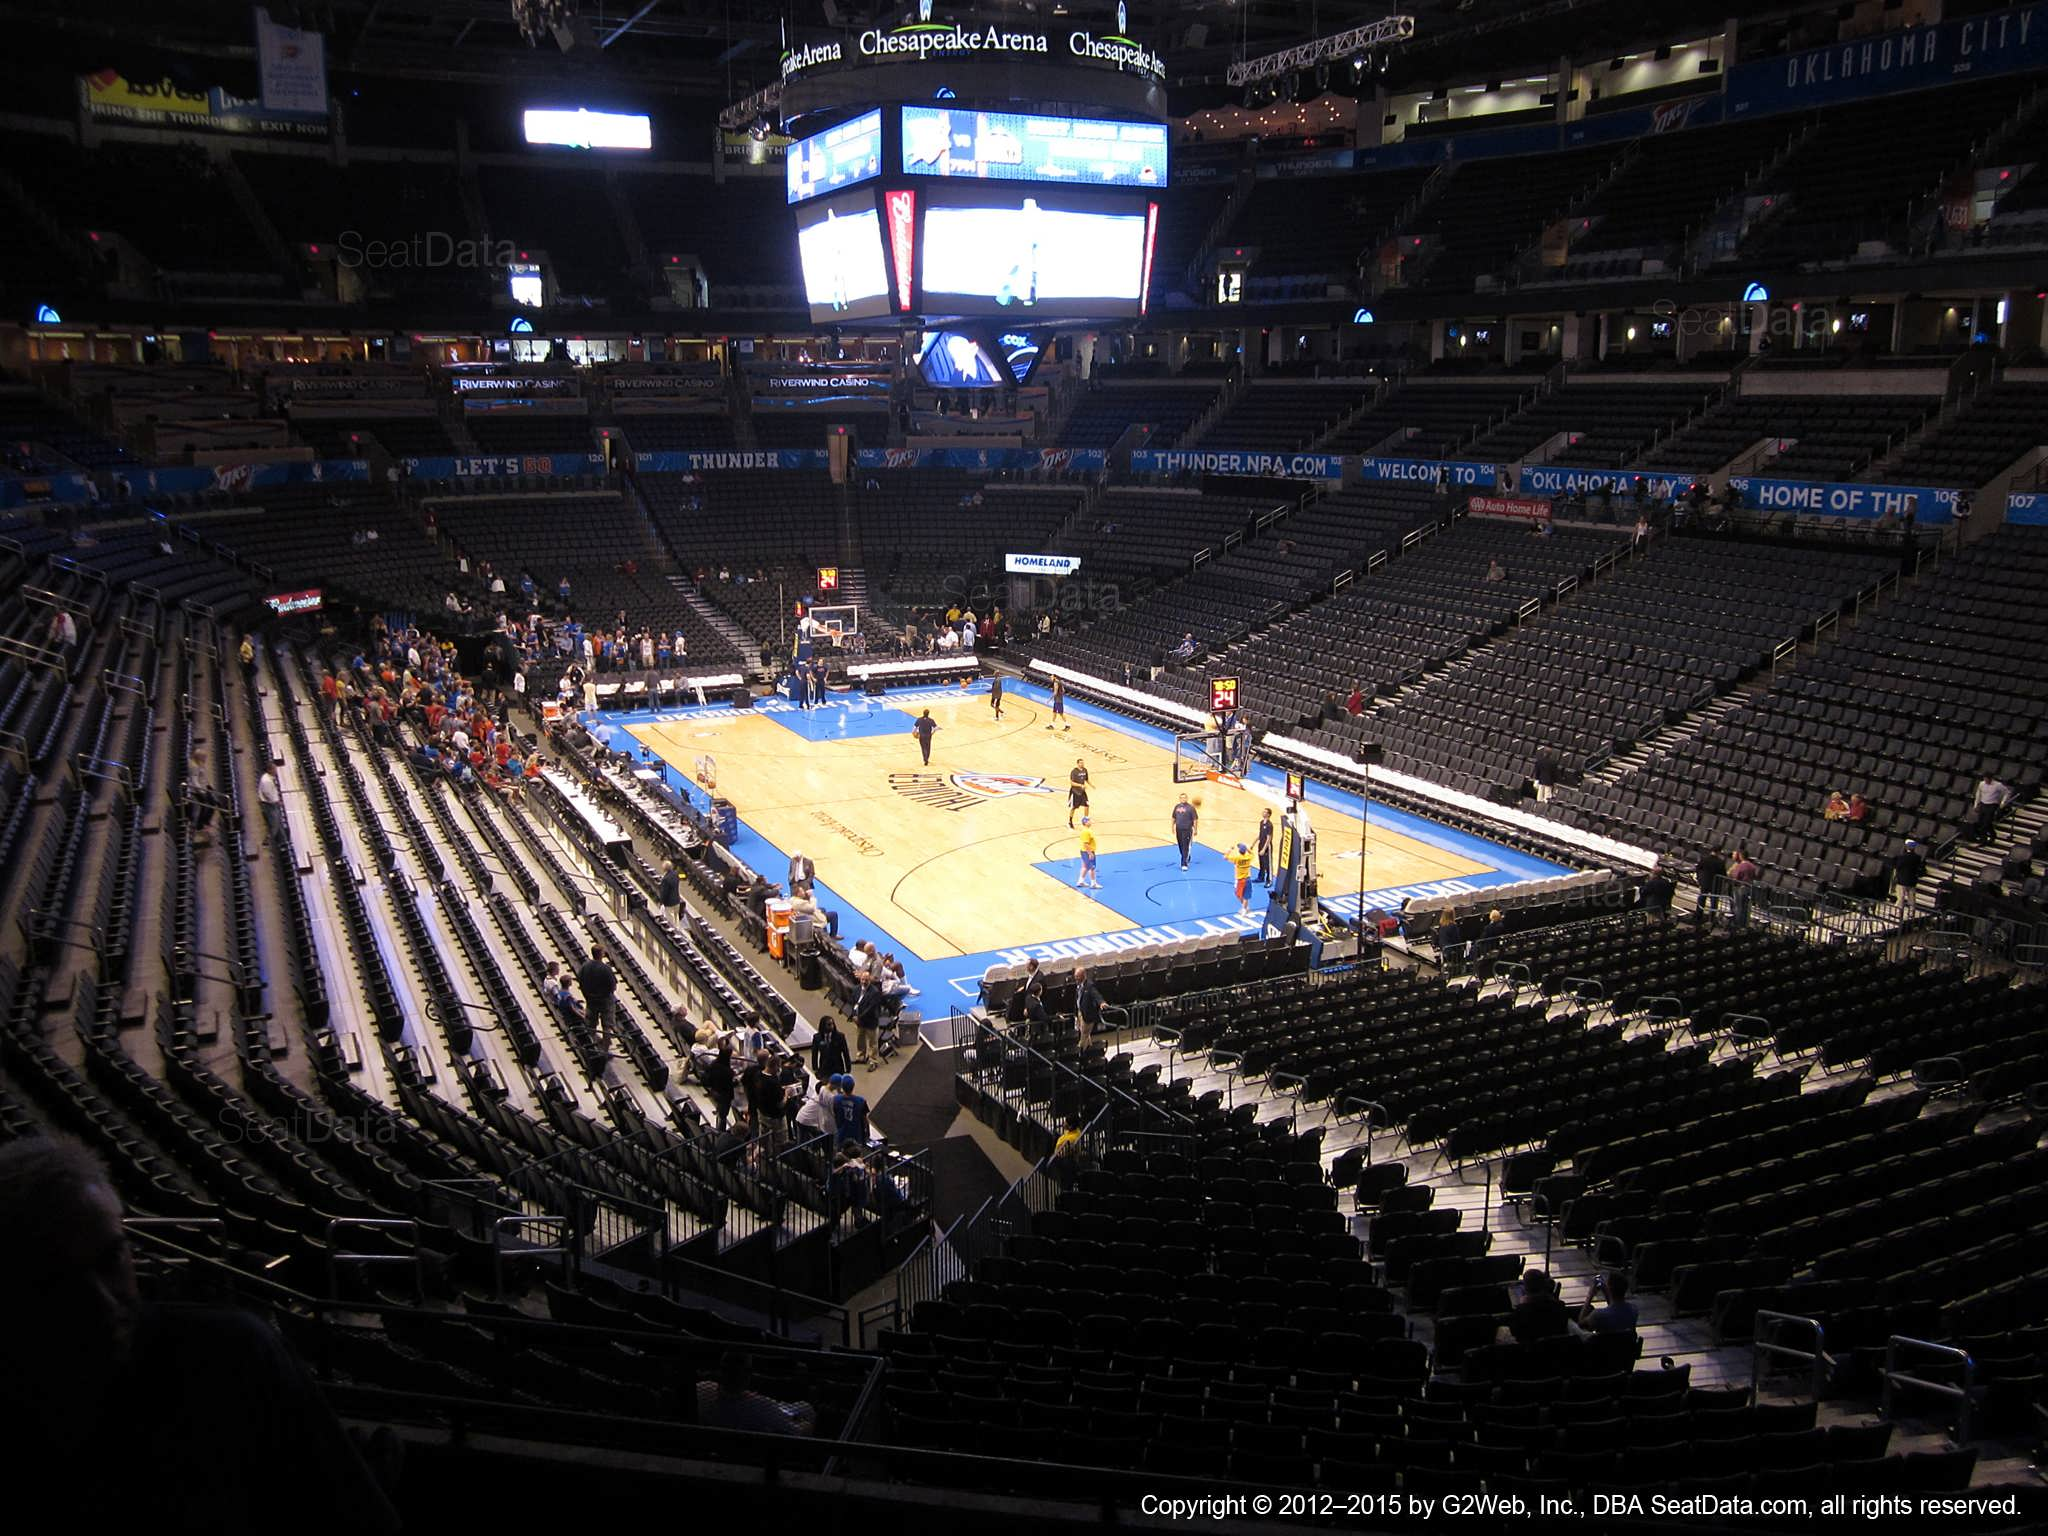 Seat view from section 218 at Chesapeake Energy Arena, home of the Oklahoma City Thunder